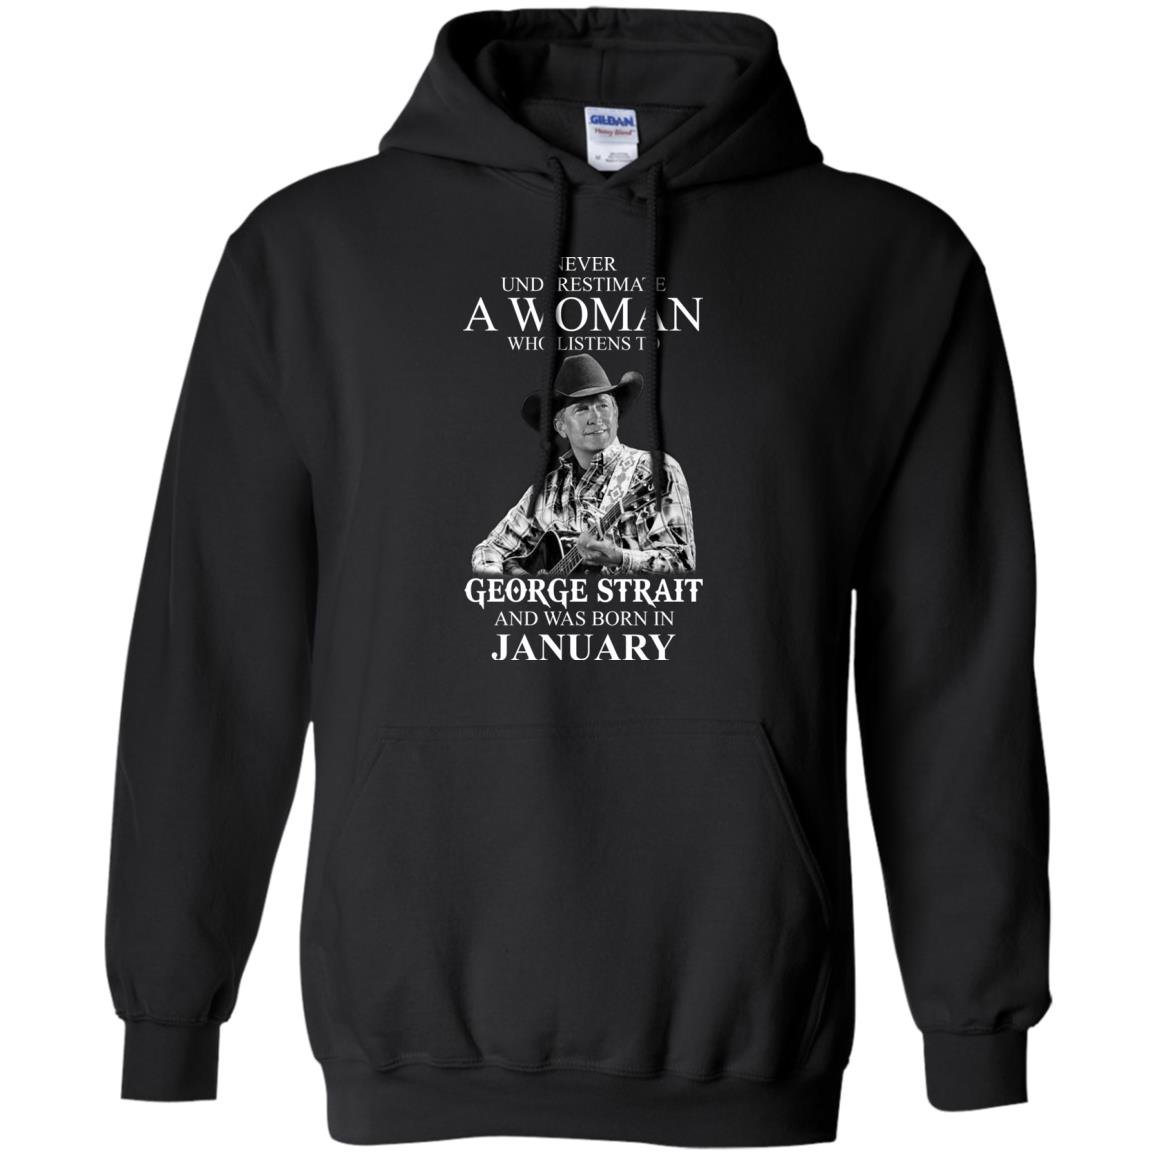 image 462 - Never Underestimate A Woman Who Listens To George Strait And Was Born In January shirt